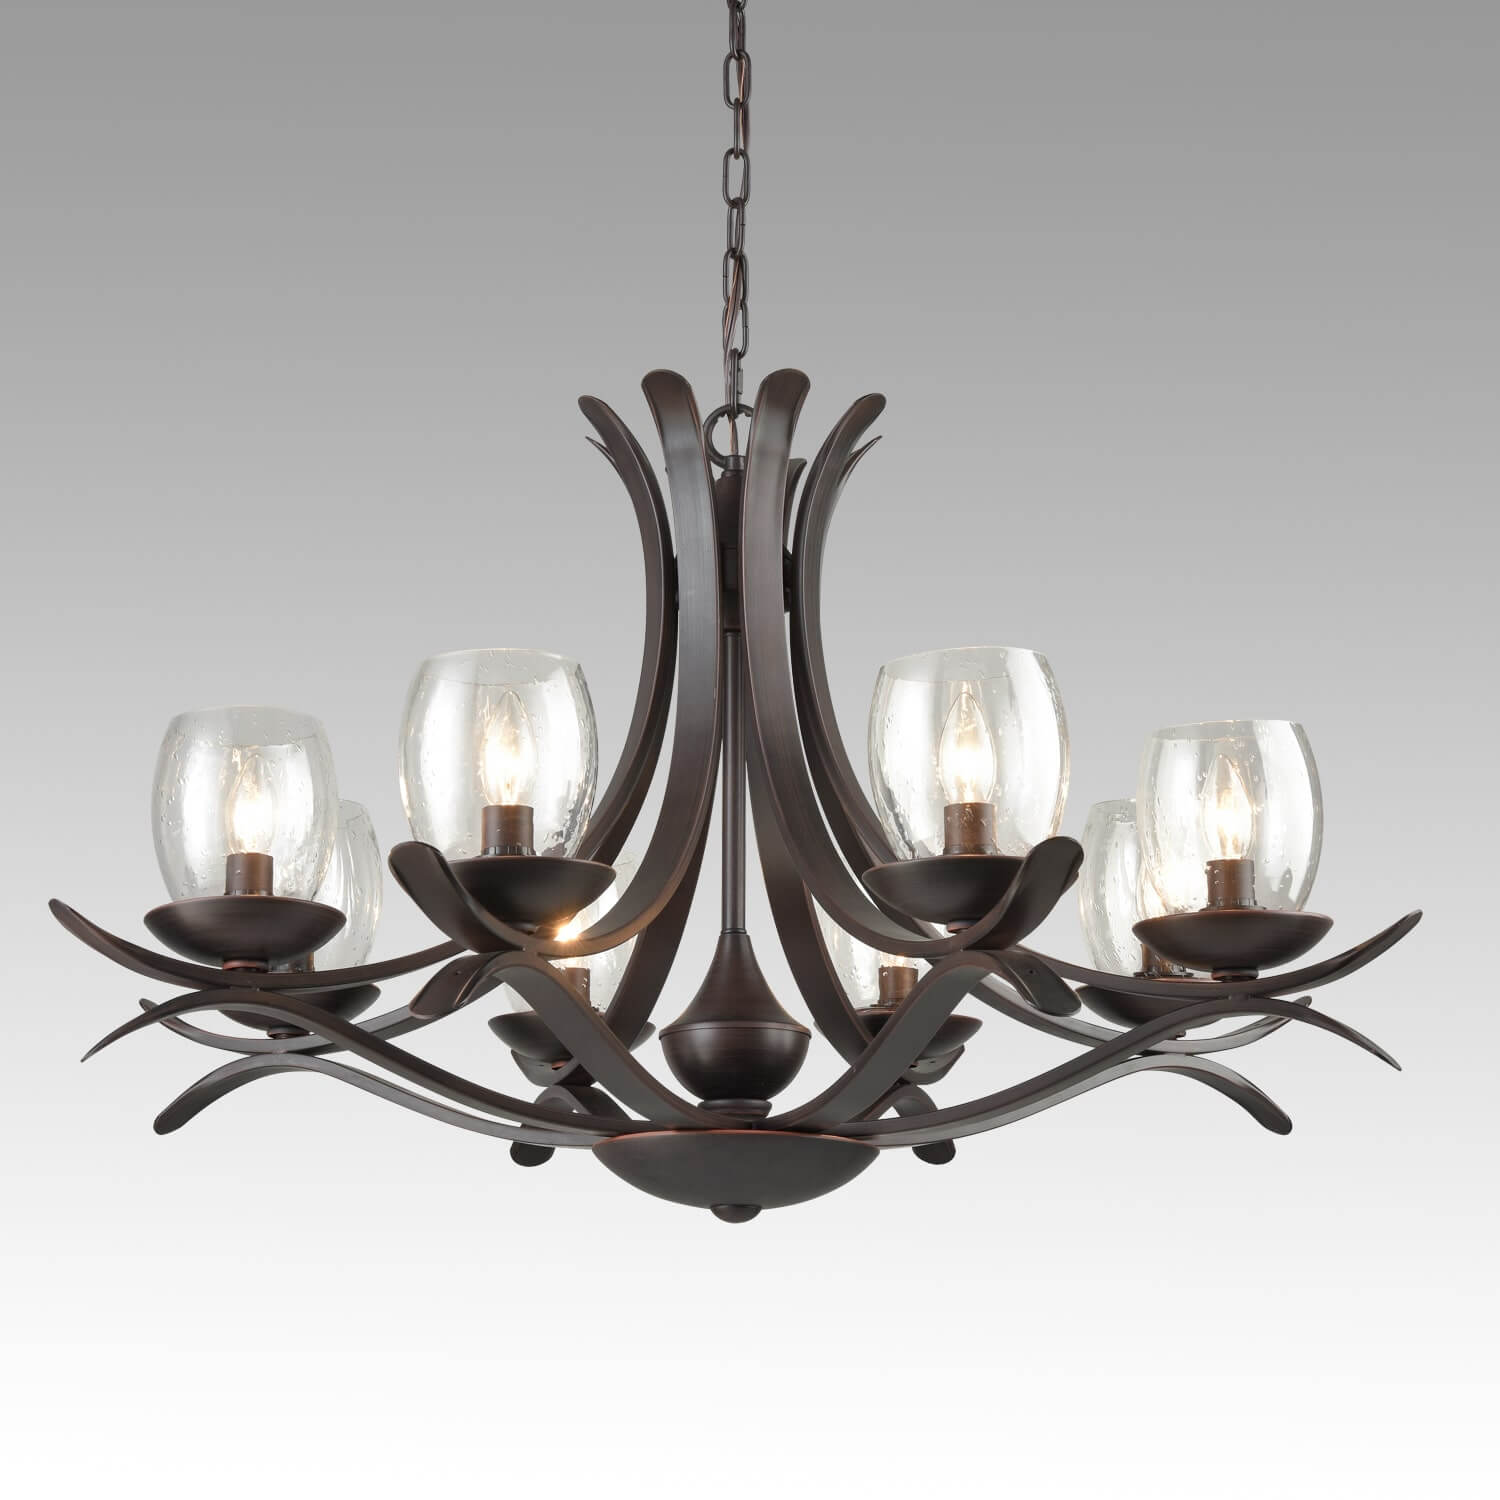 Rustic Bronze Dining Room Chandelier with Seeded Glass - 8 Light